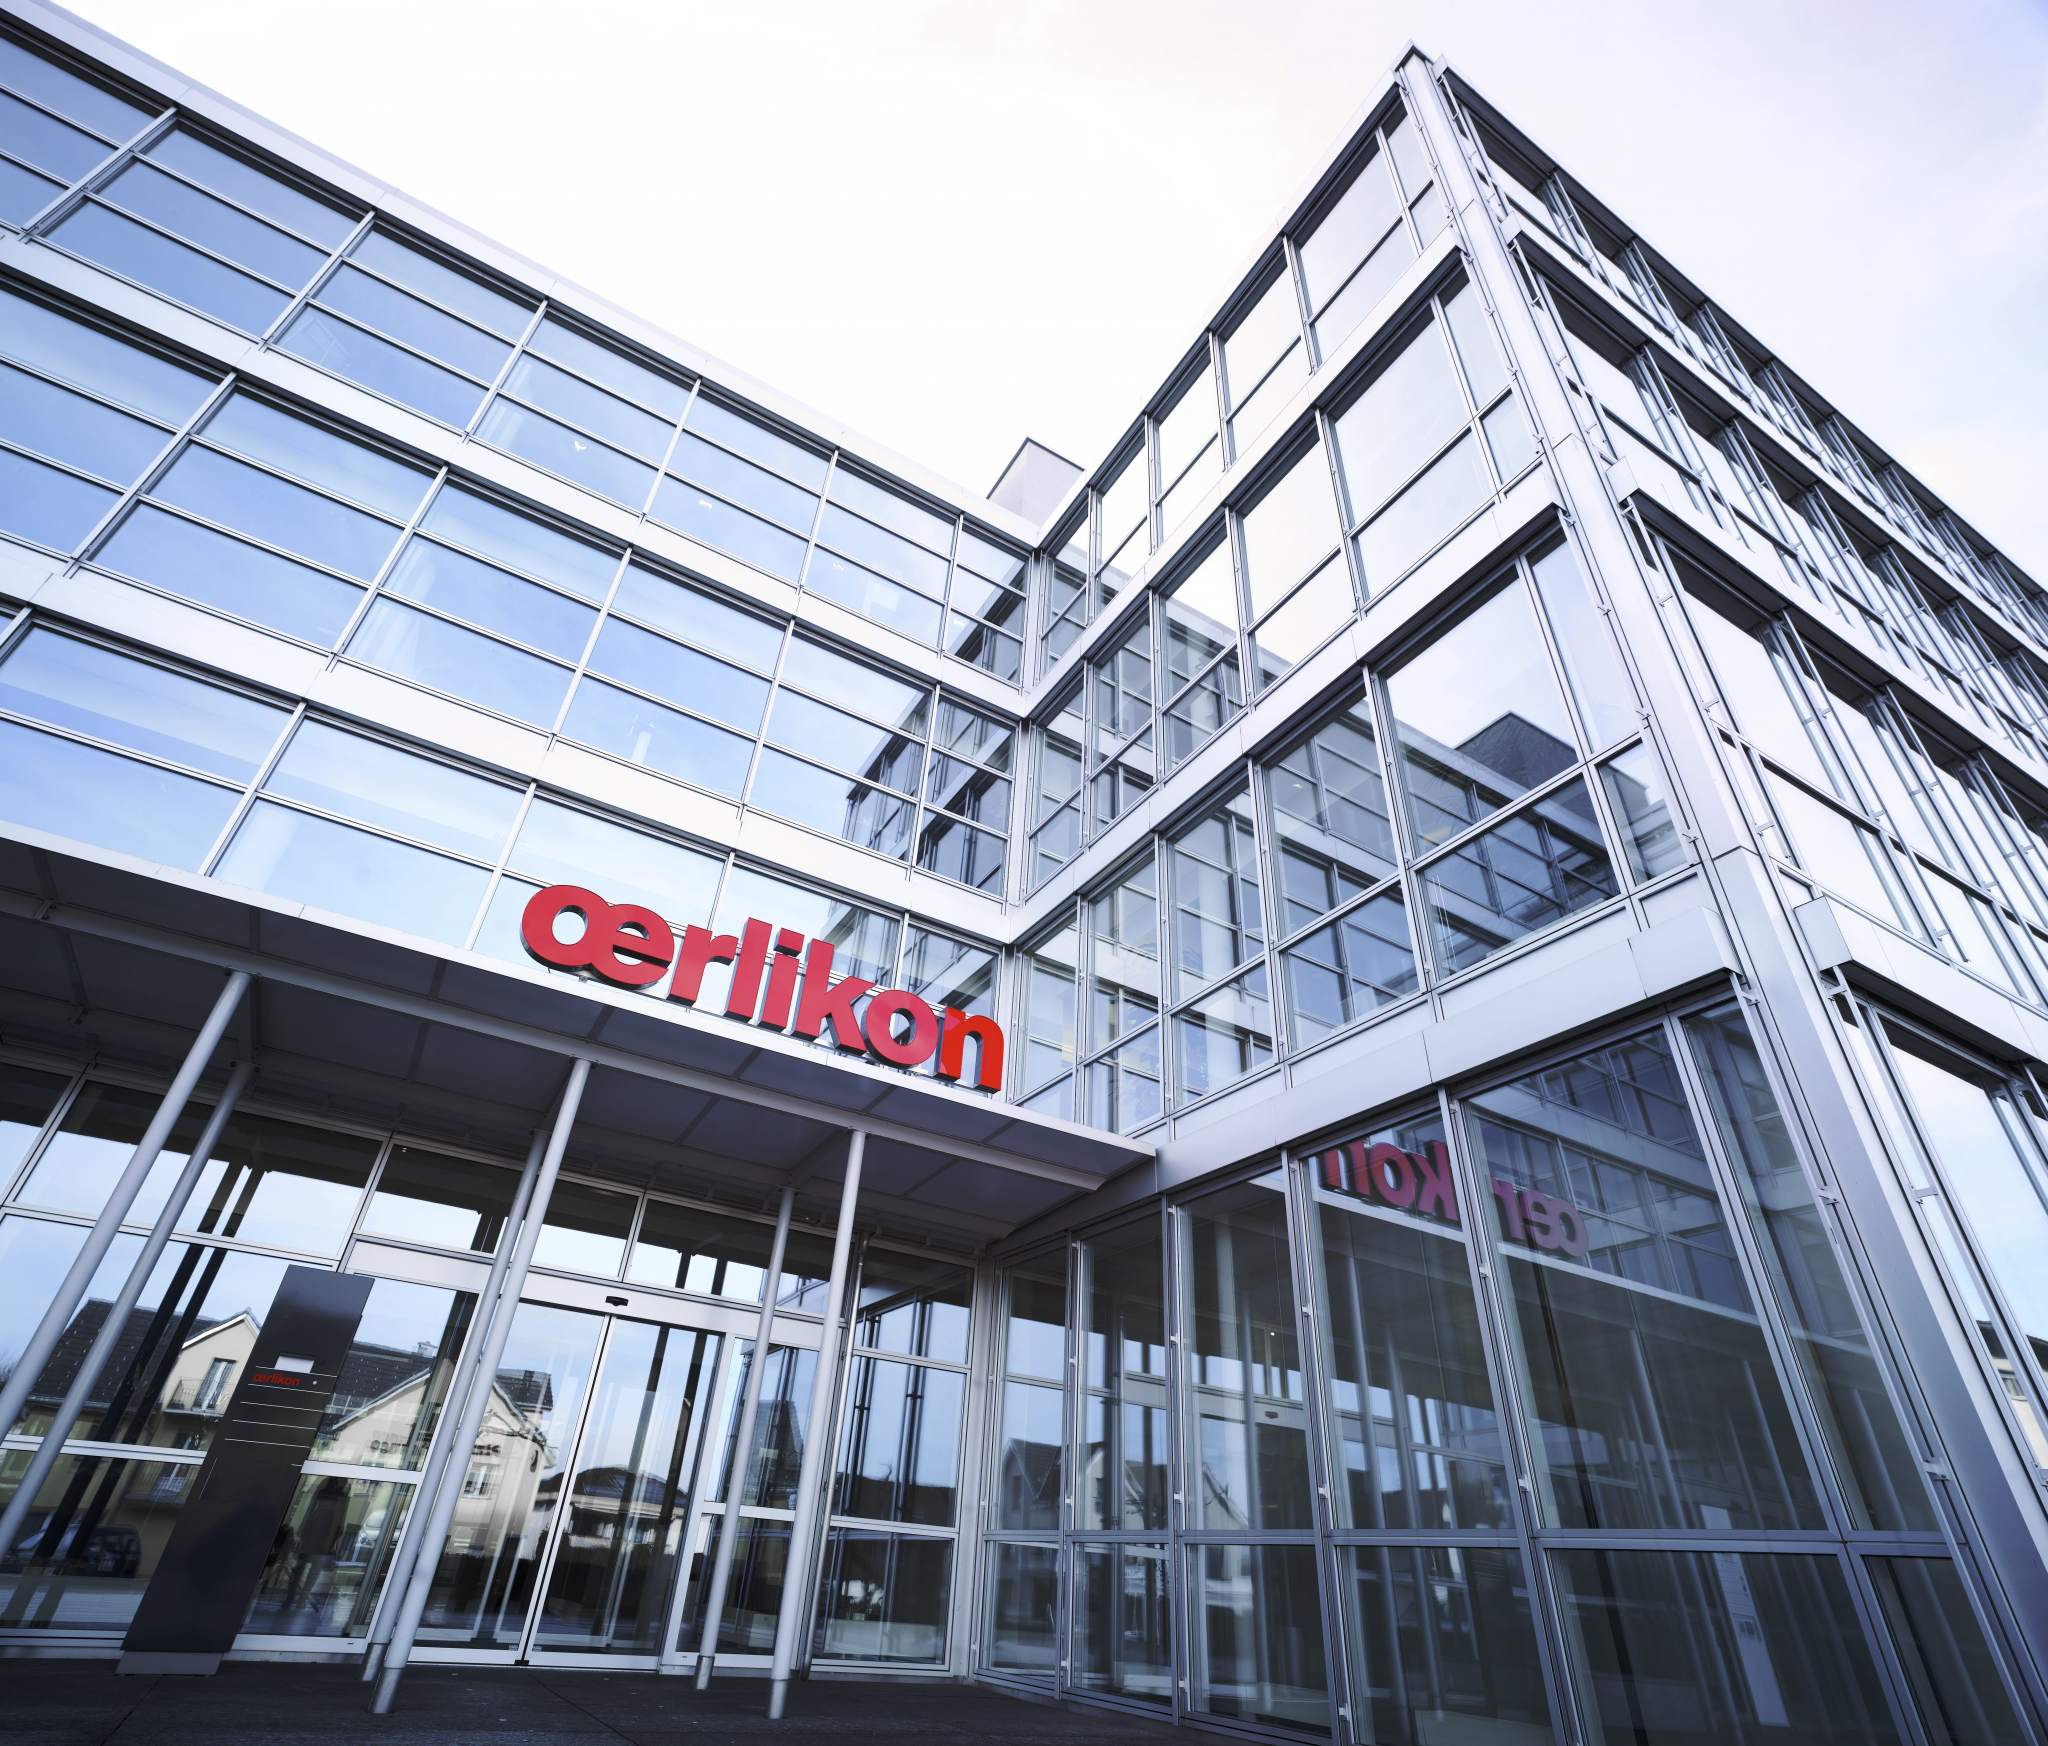 Oerlikon Headquarters in Switzerland. Photo via Oerlikon.